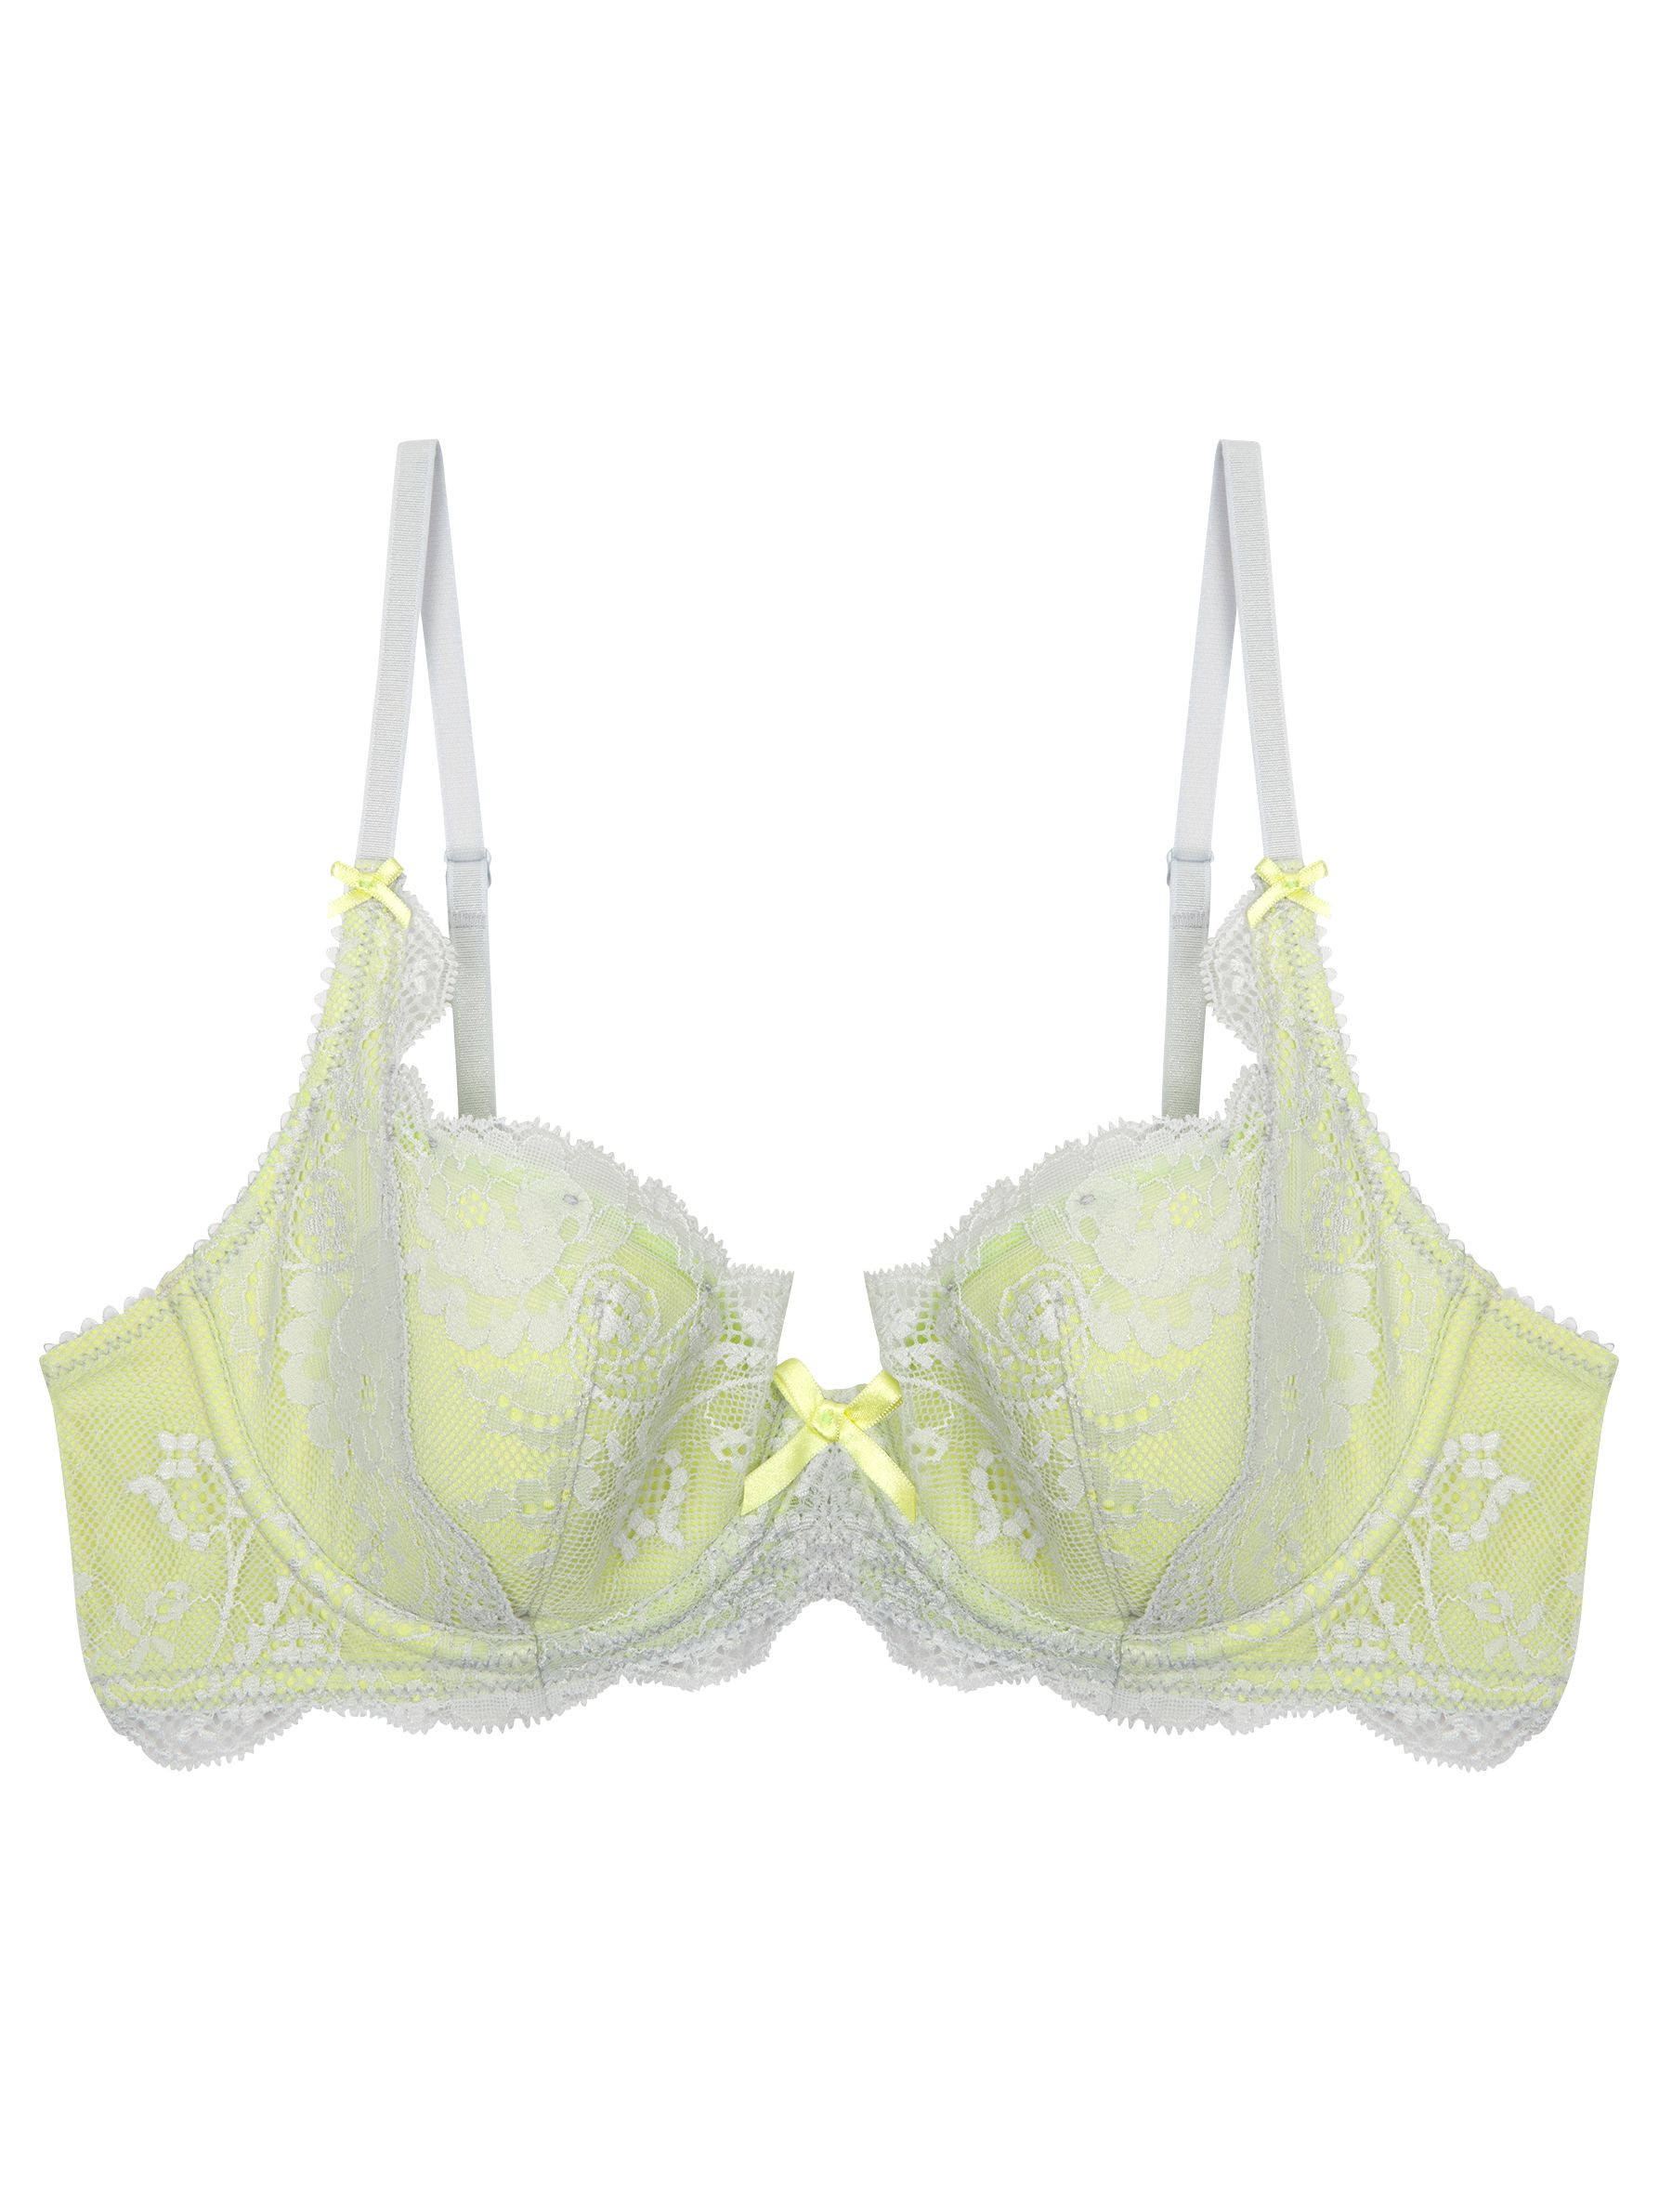 Elle Macpherson Intimates Gentle Jade Contour Bra, Gray Dawn / Sunny Lime